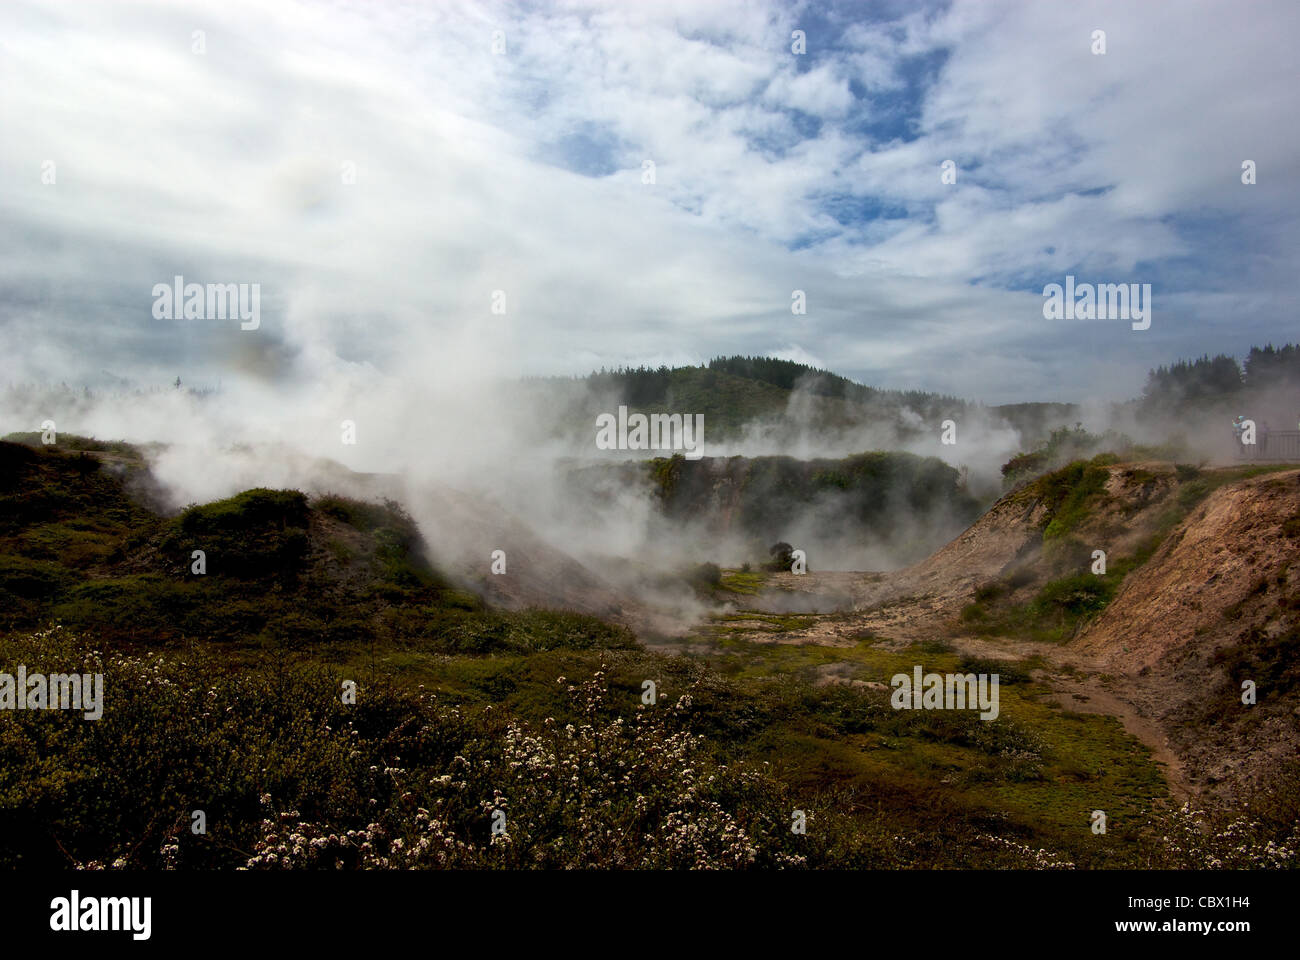 Craters of the Moon geothermal steam vents mud pools explosion crater Lake Taupo New Zealand - Stock Image